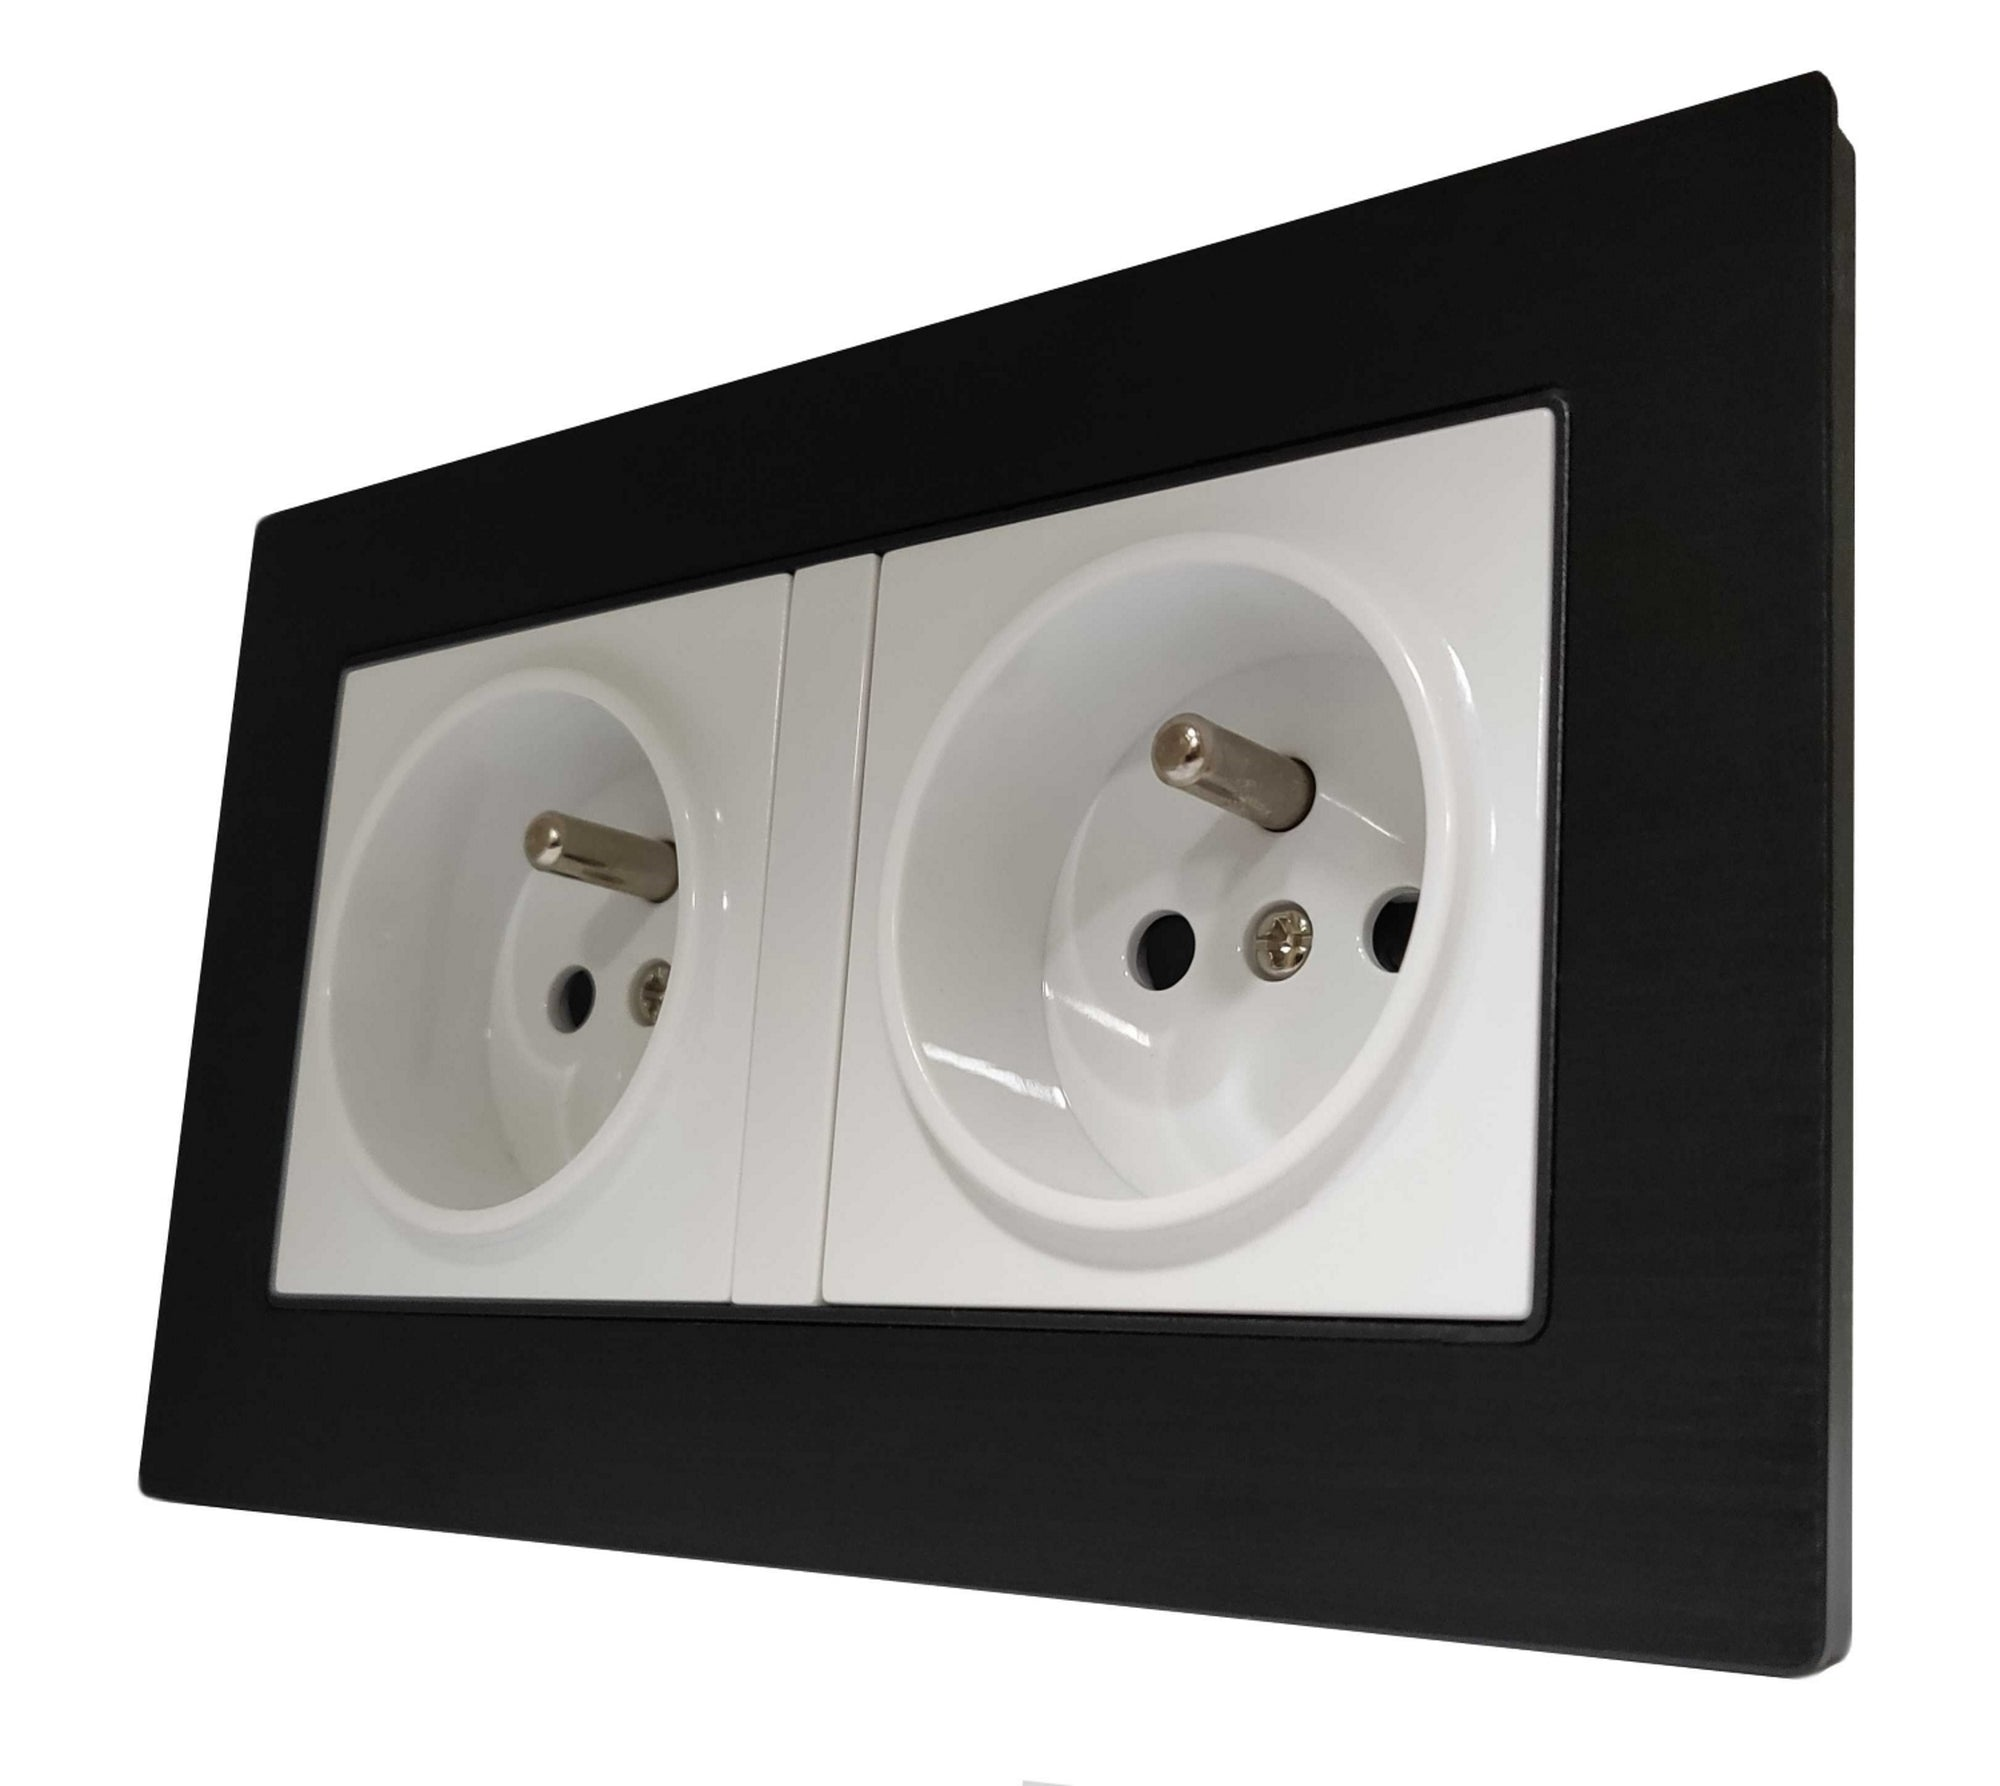 Double French EU 16A 2-Pin AC Wall Power Socket in Black Brushed Alum Frame & White Centre